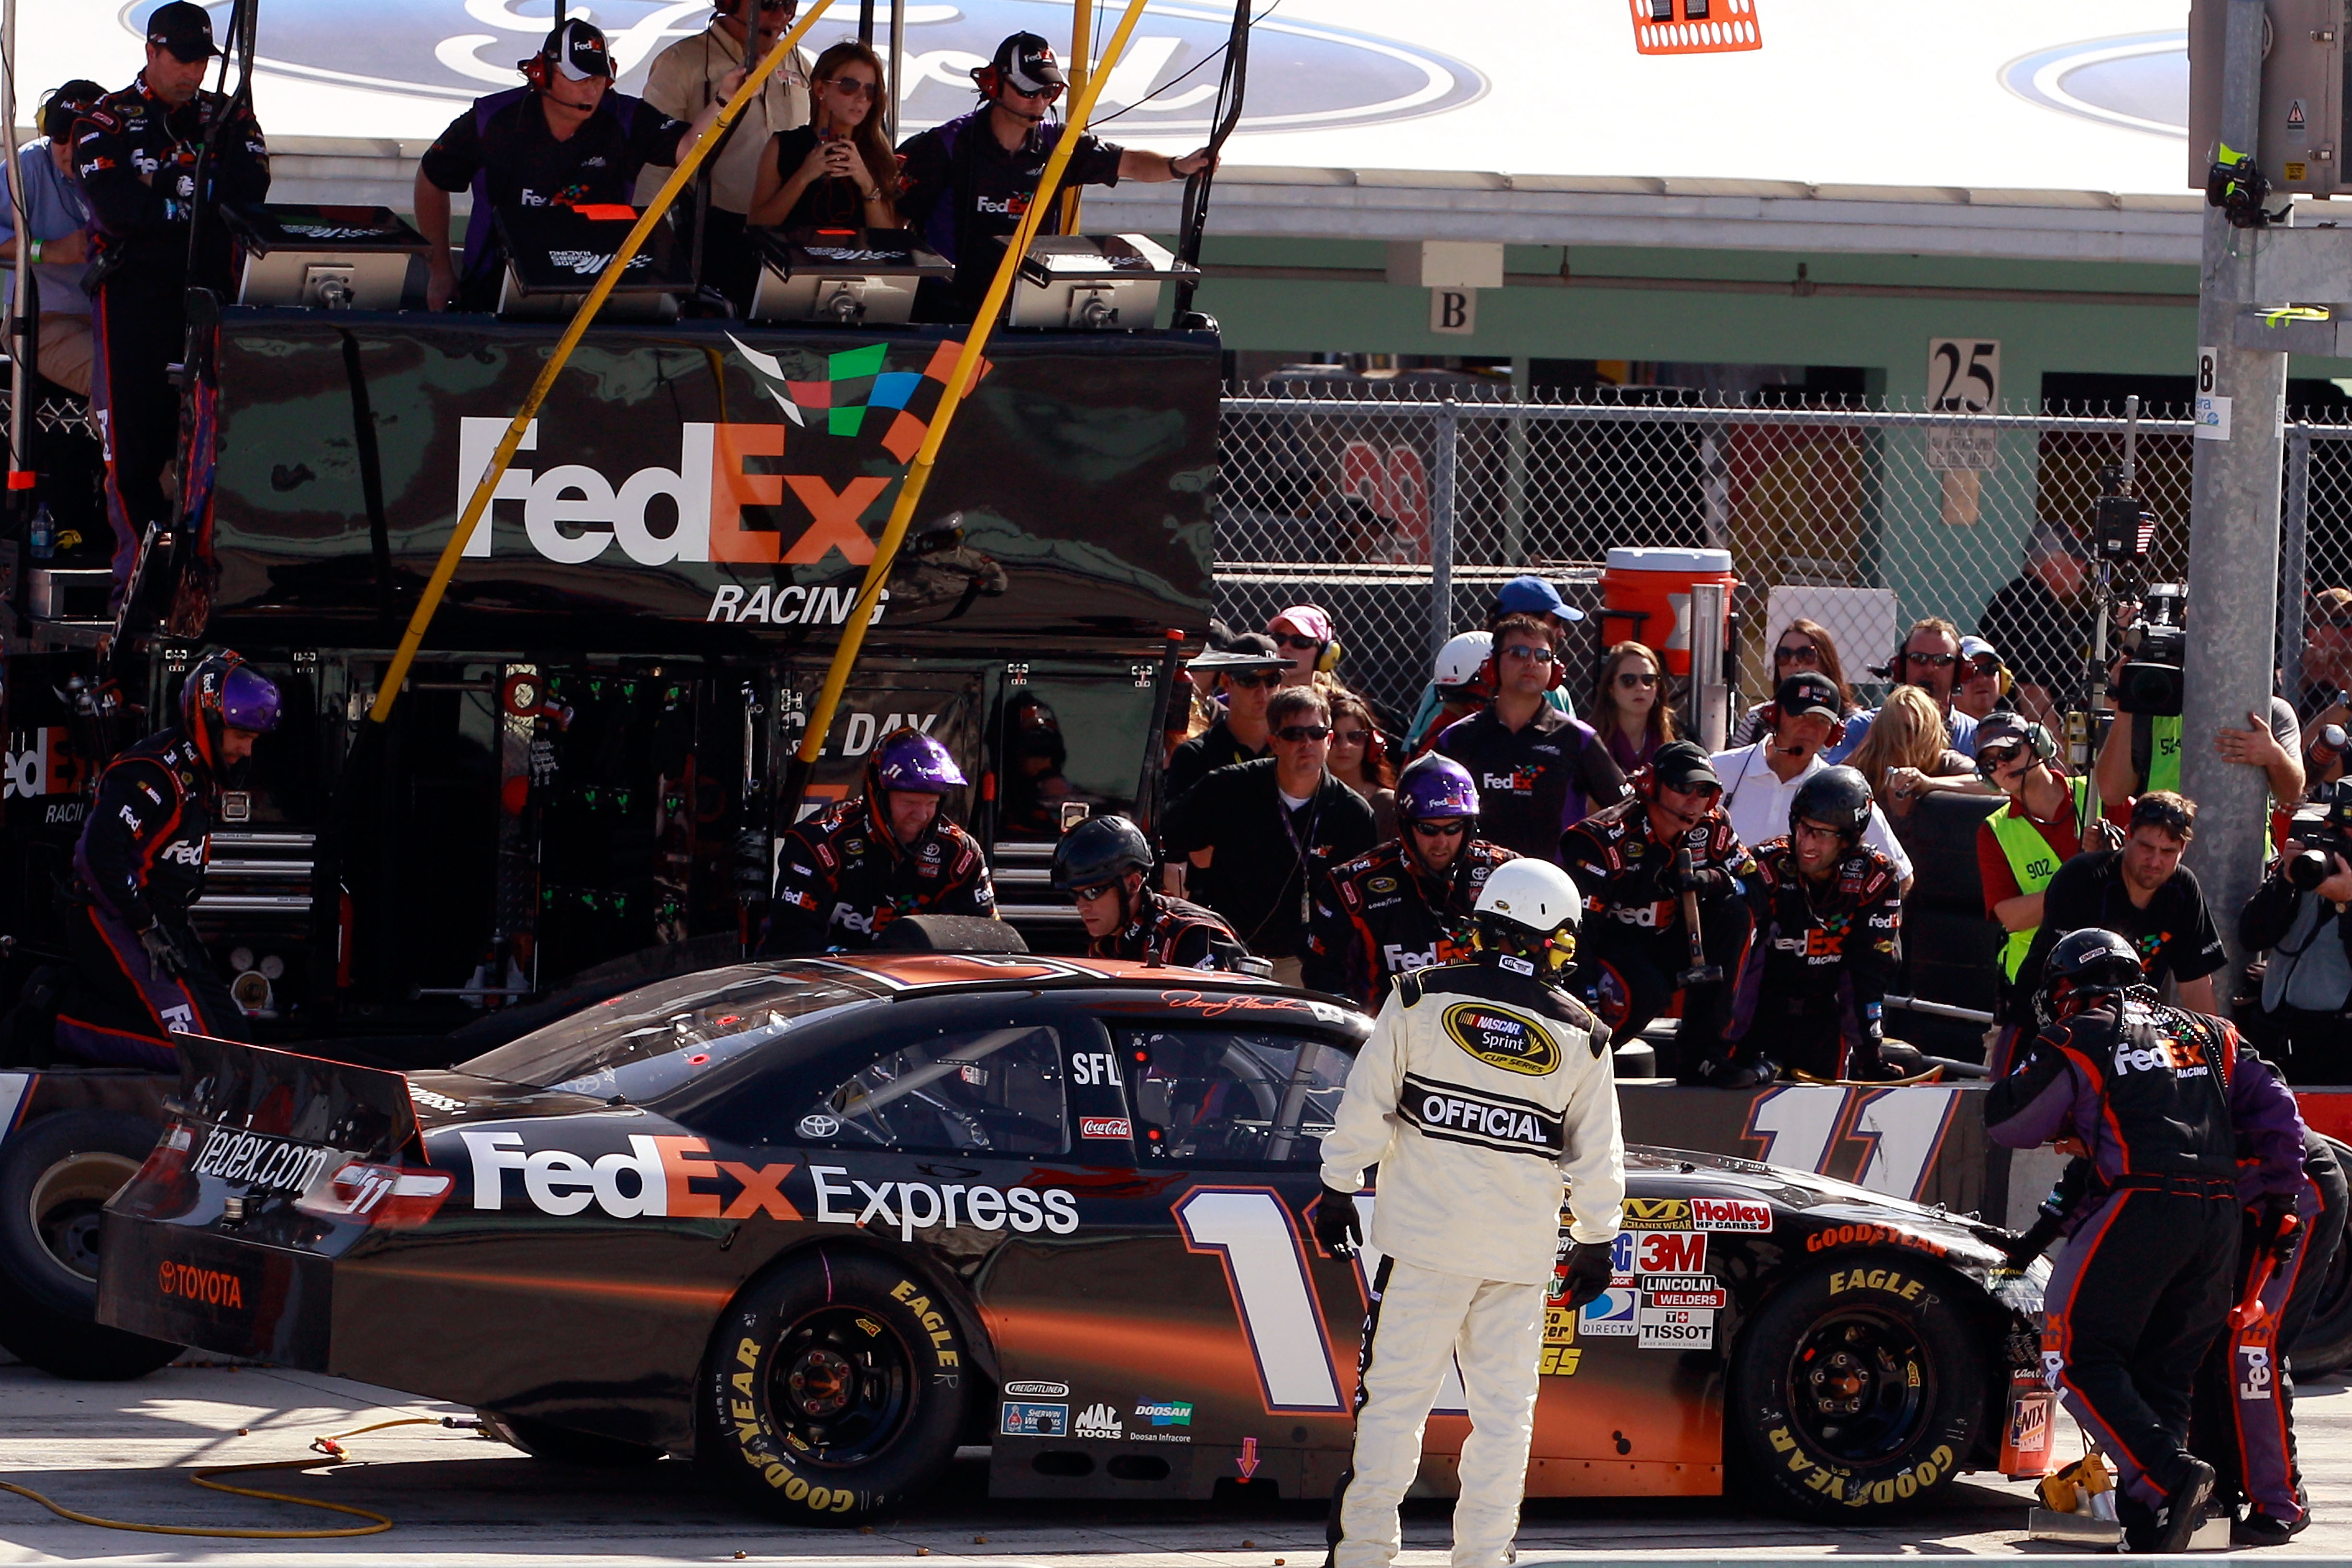 HOMESTEAD, FL - NOVEMBER 21:  Denny Hamlin, driver of the #11 FedEx Toyota, makes a pit stop after sustaining front end damage during the NASCAR Sprint Cup Series Ford 400 at Homestead-Miami Speedway on November 21, 2010 in Homestead, Florida.  (Photo by